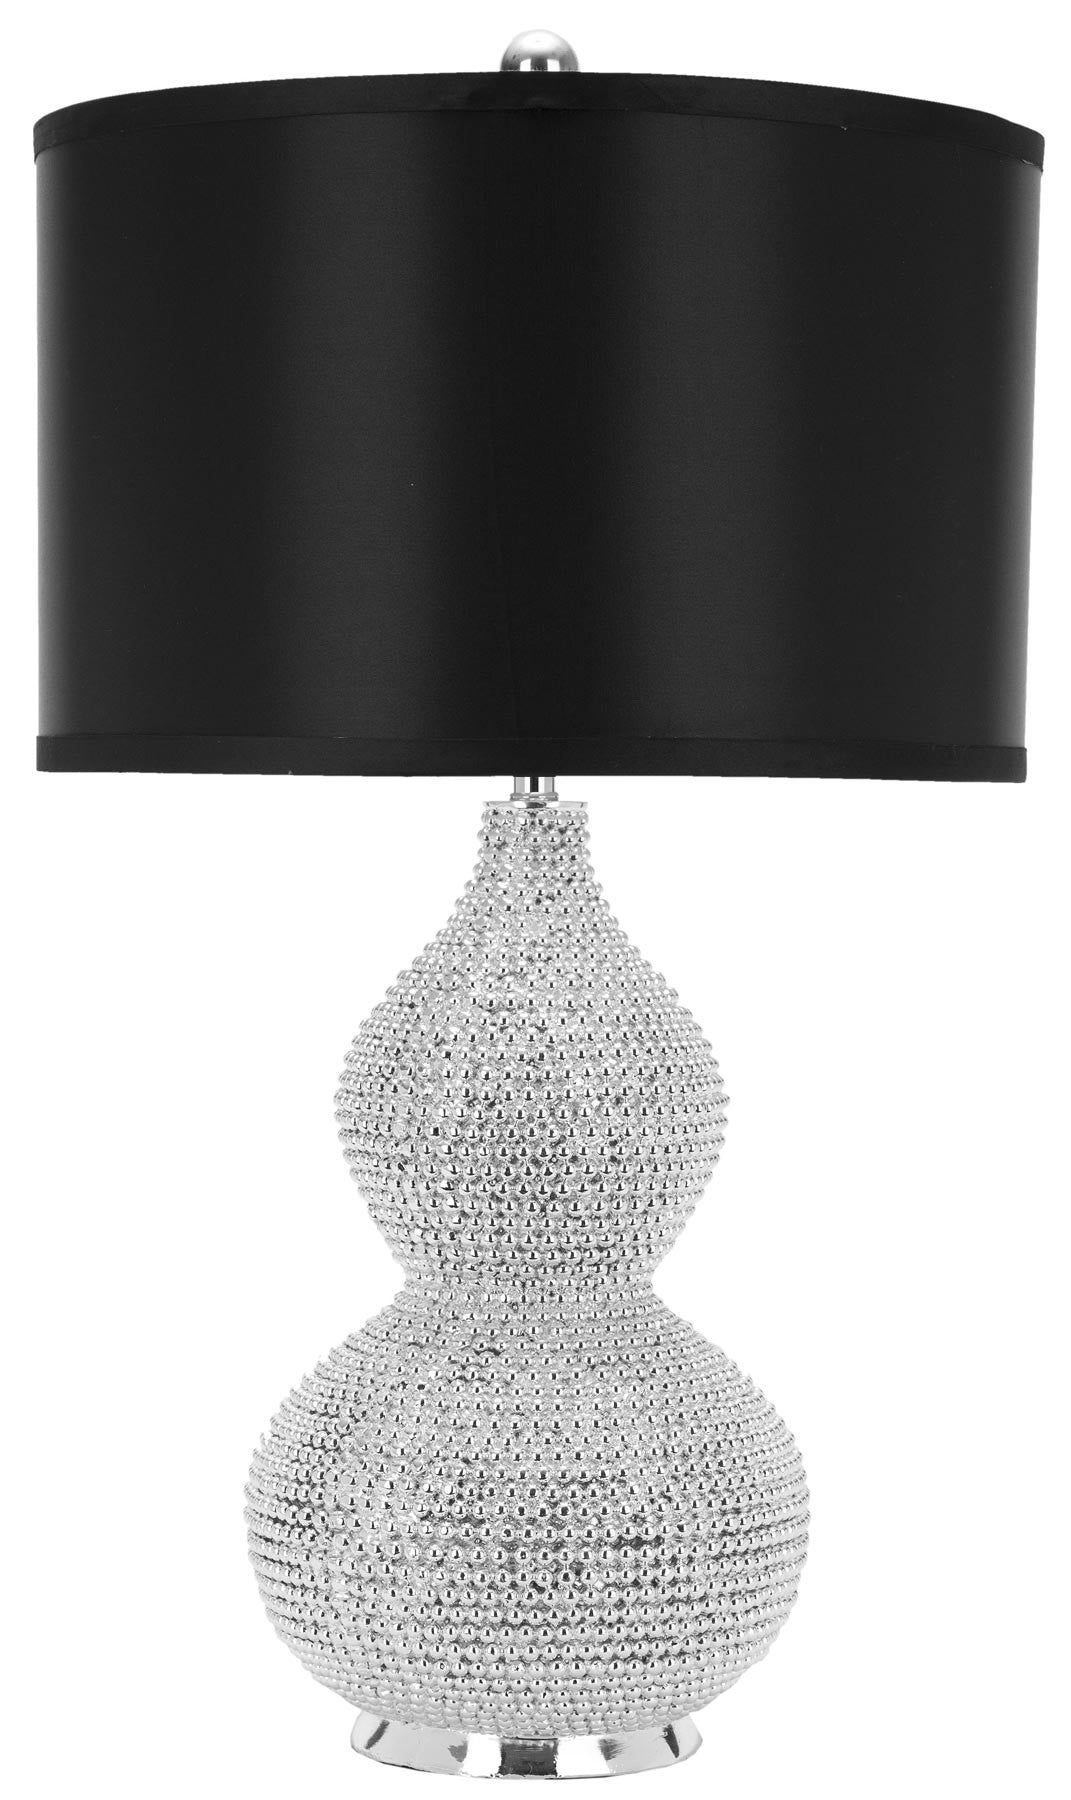 Nicole Bead Table Lamp In Silver With Black Shade Set Of 2